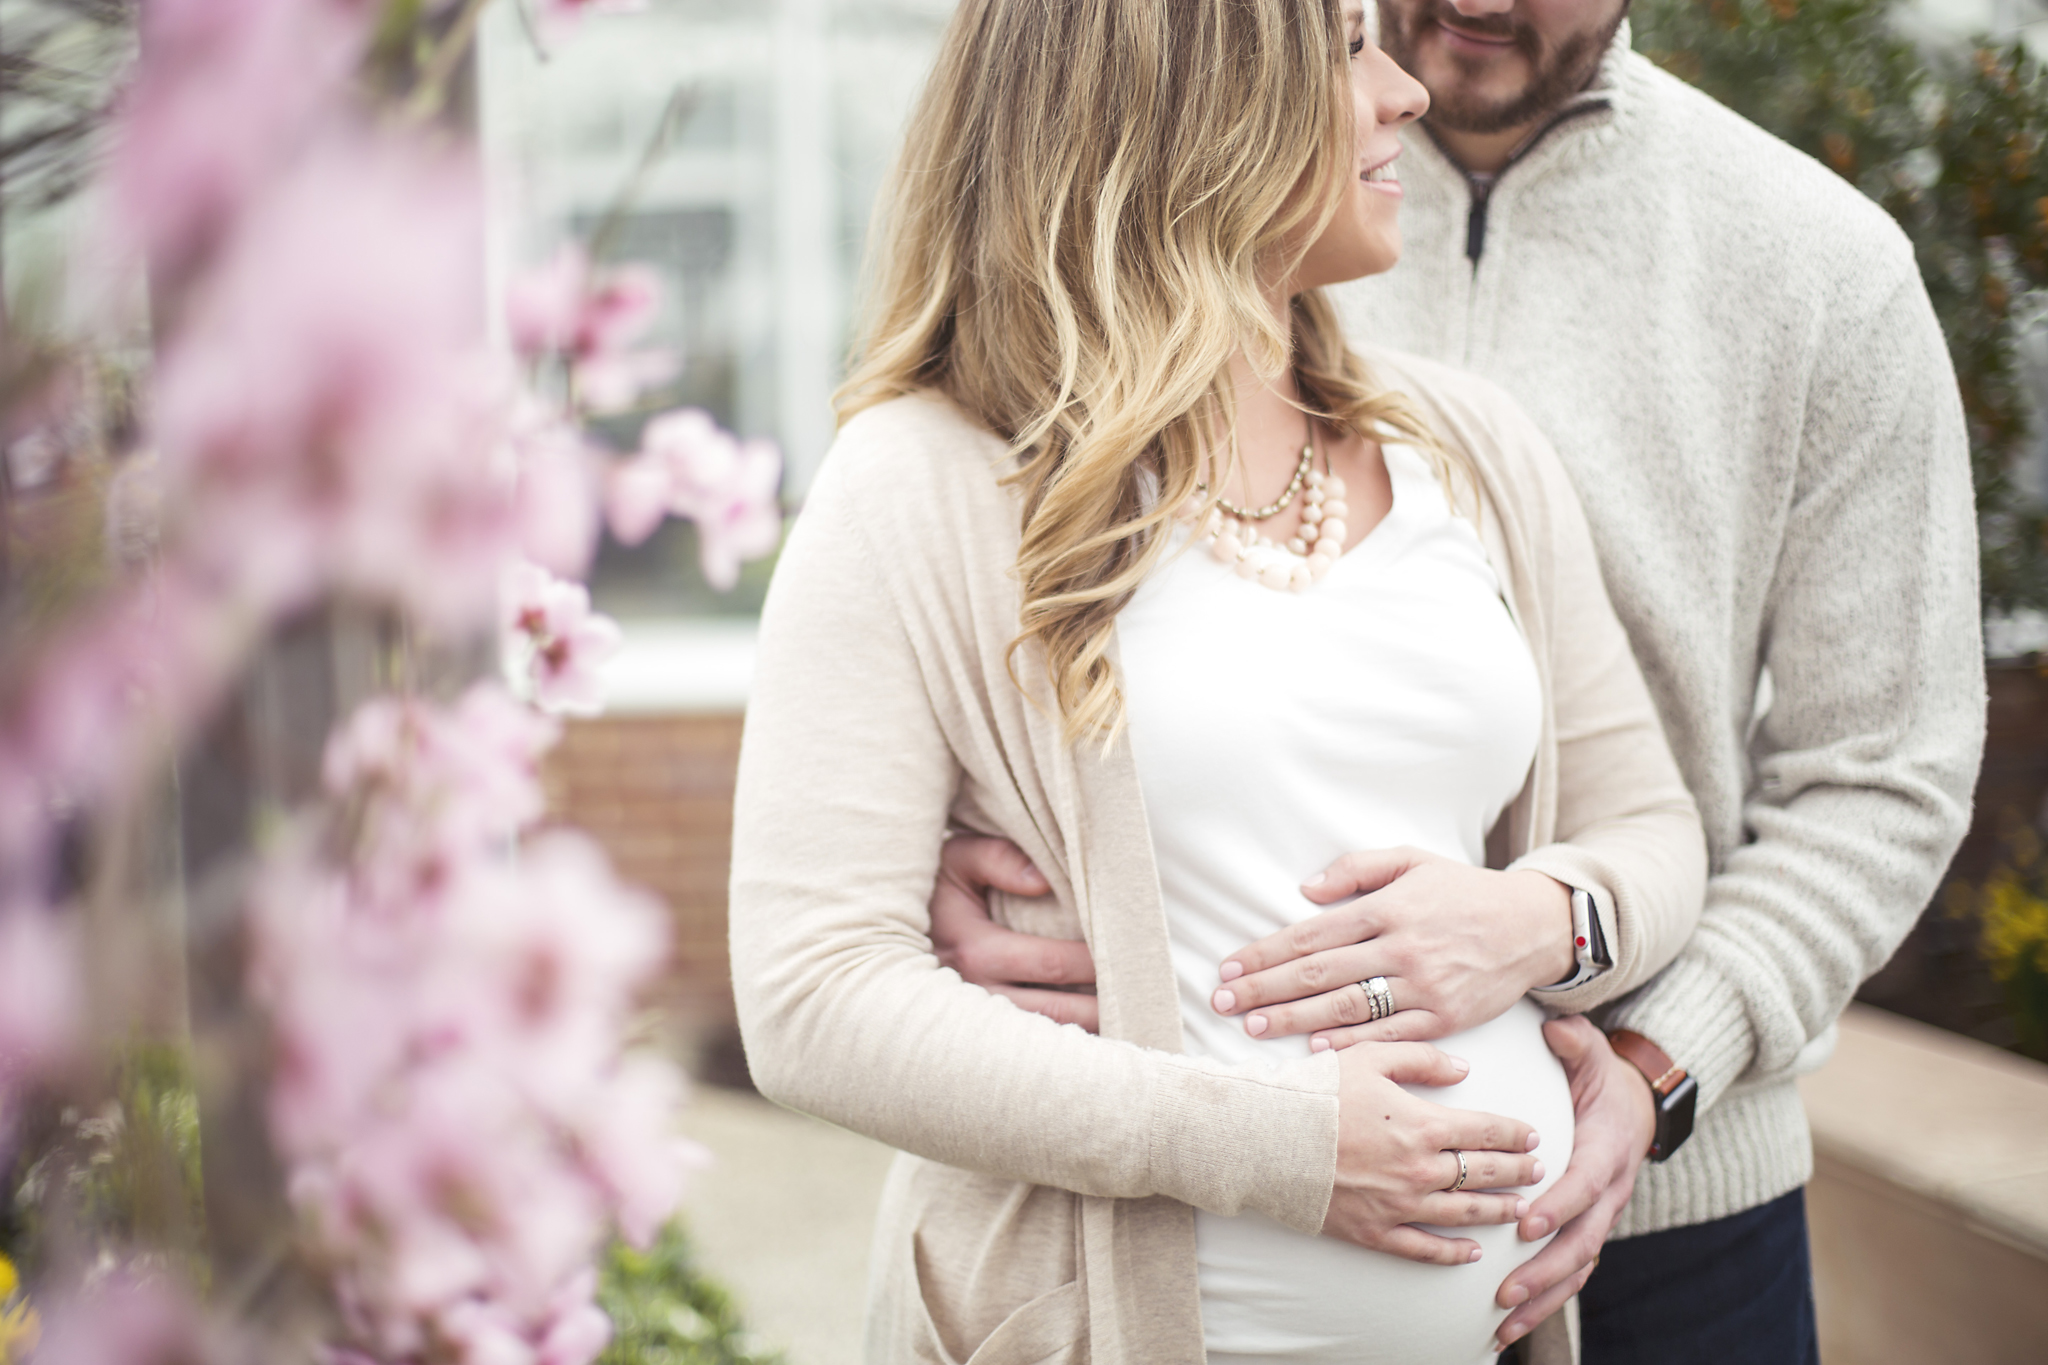 lawrence_maternity_2019_034.jpg